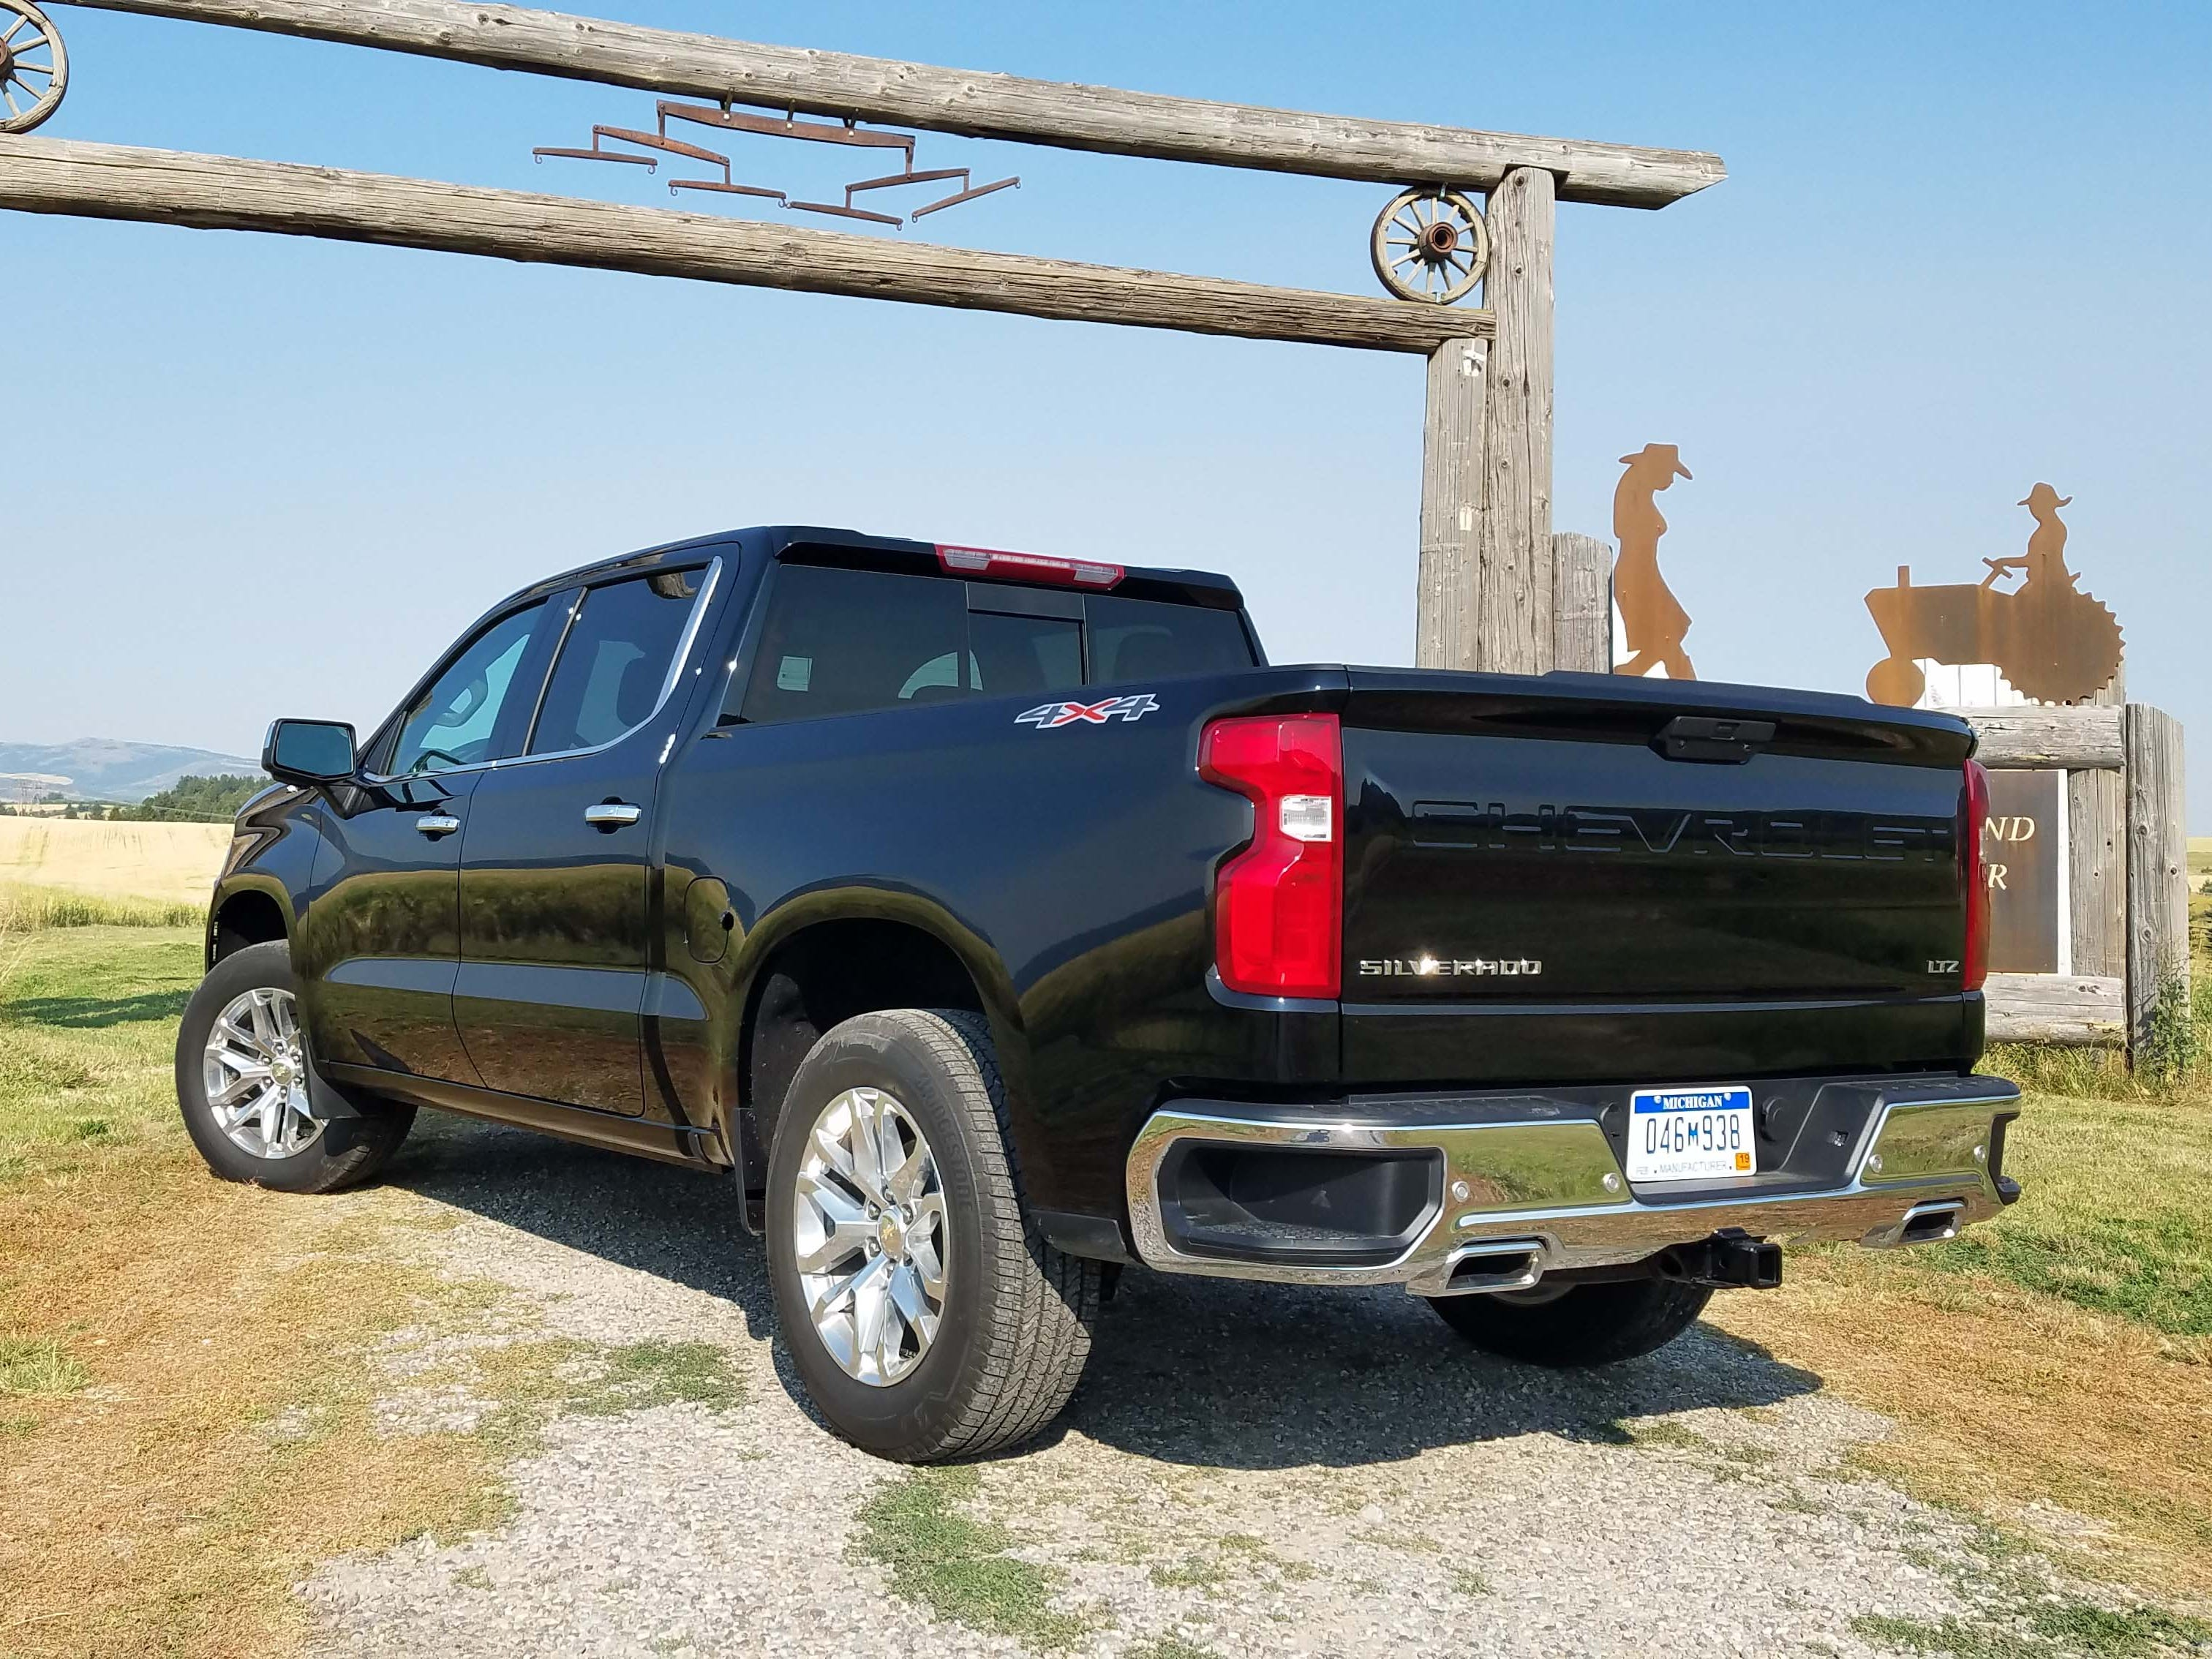 The 2019 Chevy Silverado is new from the ground up with a light-weighted chassis, more trailering capability, and V-8 engines that run on one cylinder when necessary to reduce fuel consumption.